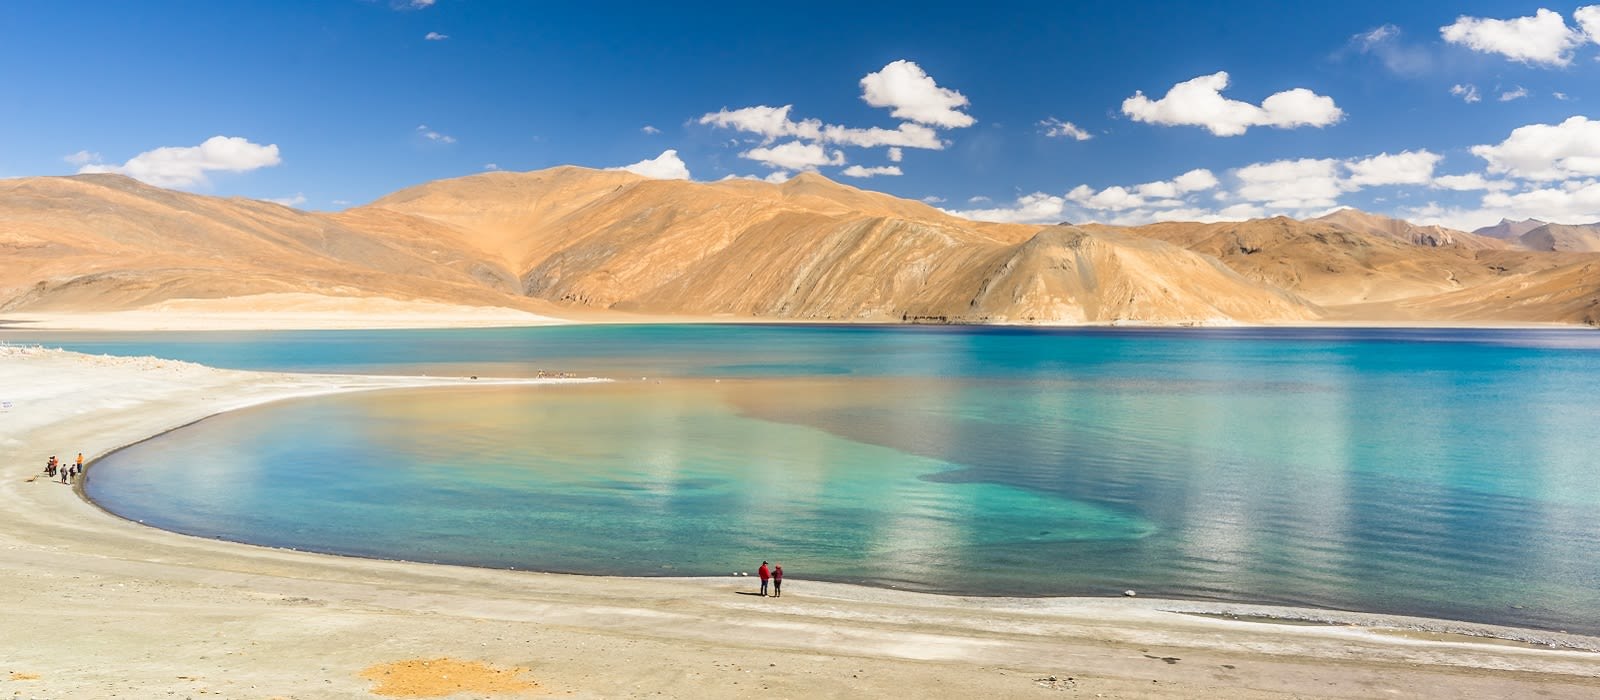 Enchanting Travels India Tours Leh Pangong lake in autumn ,leh ladakh india - himalaya trekking